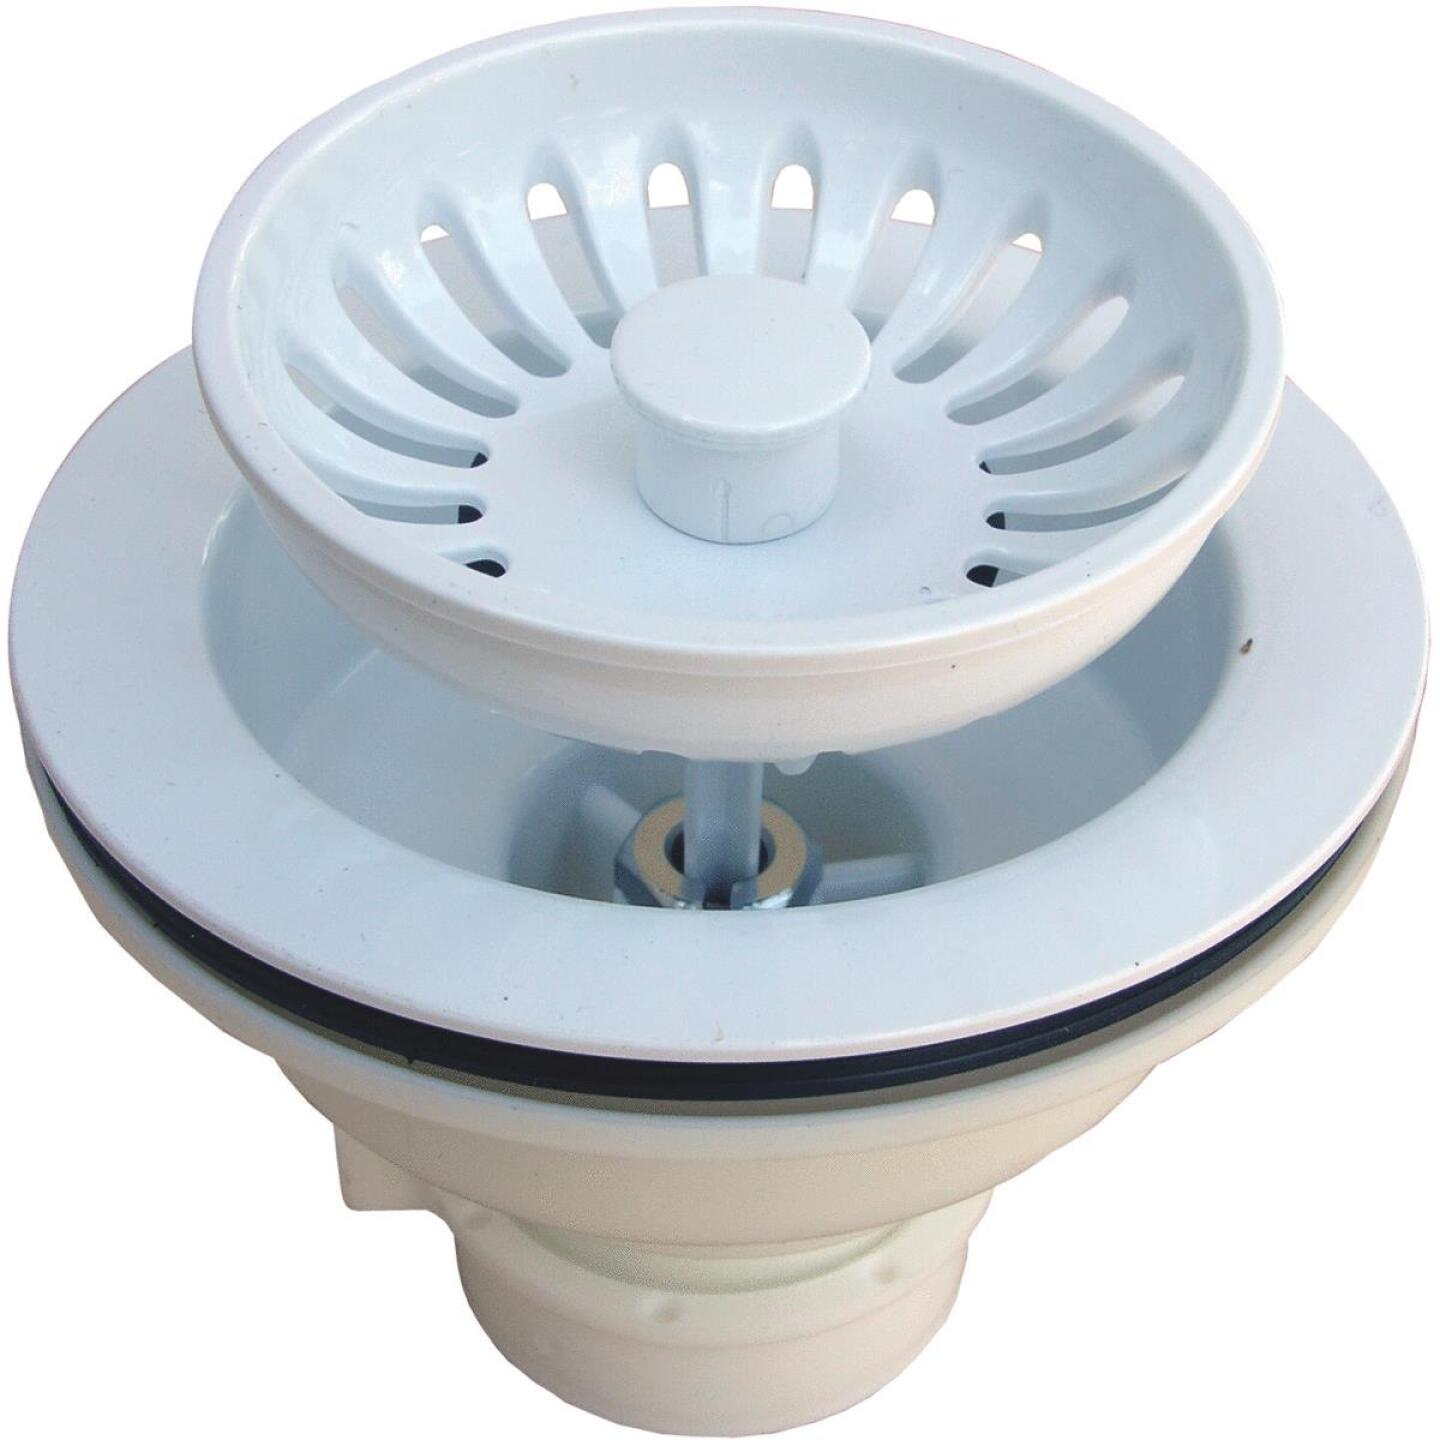 Lasco 3-1/2 In. Heavy-Duty Basket Strainer Assembly, White Image 1